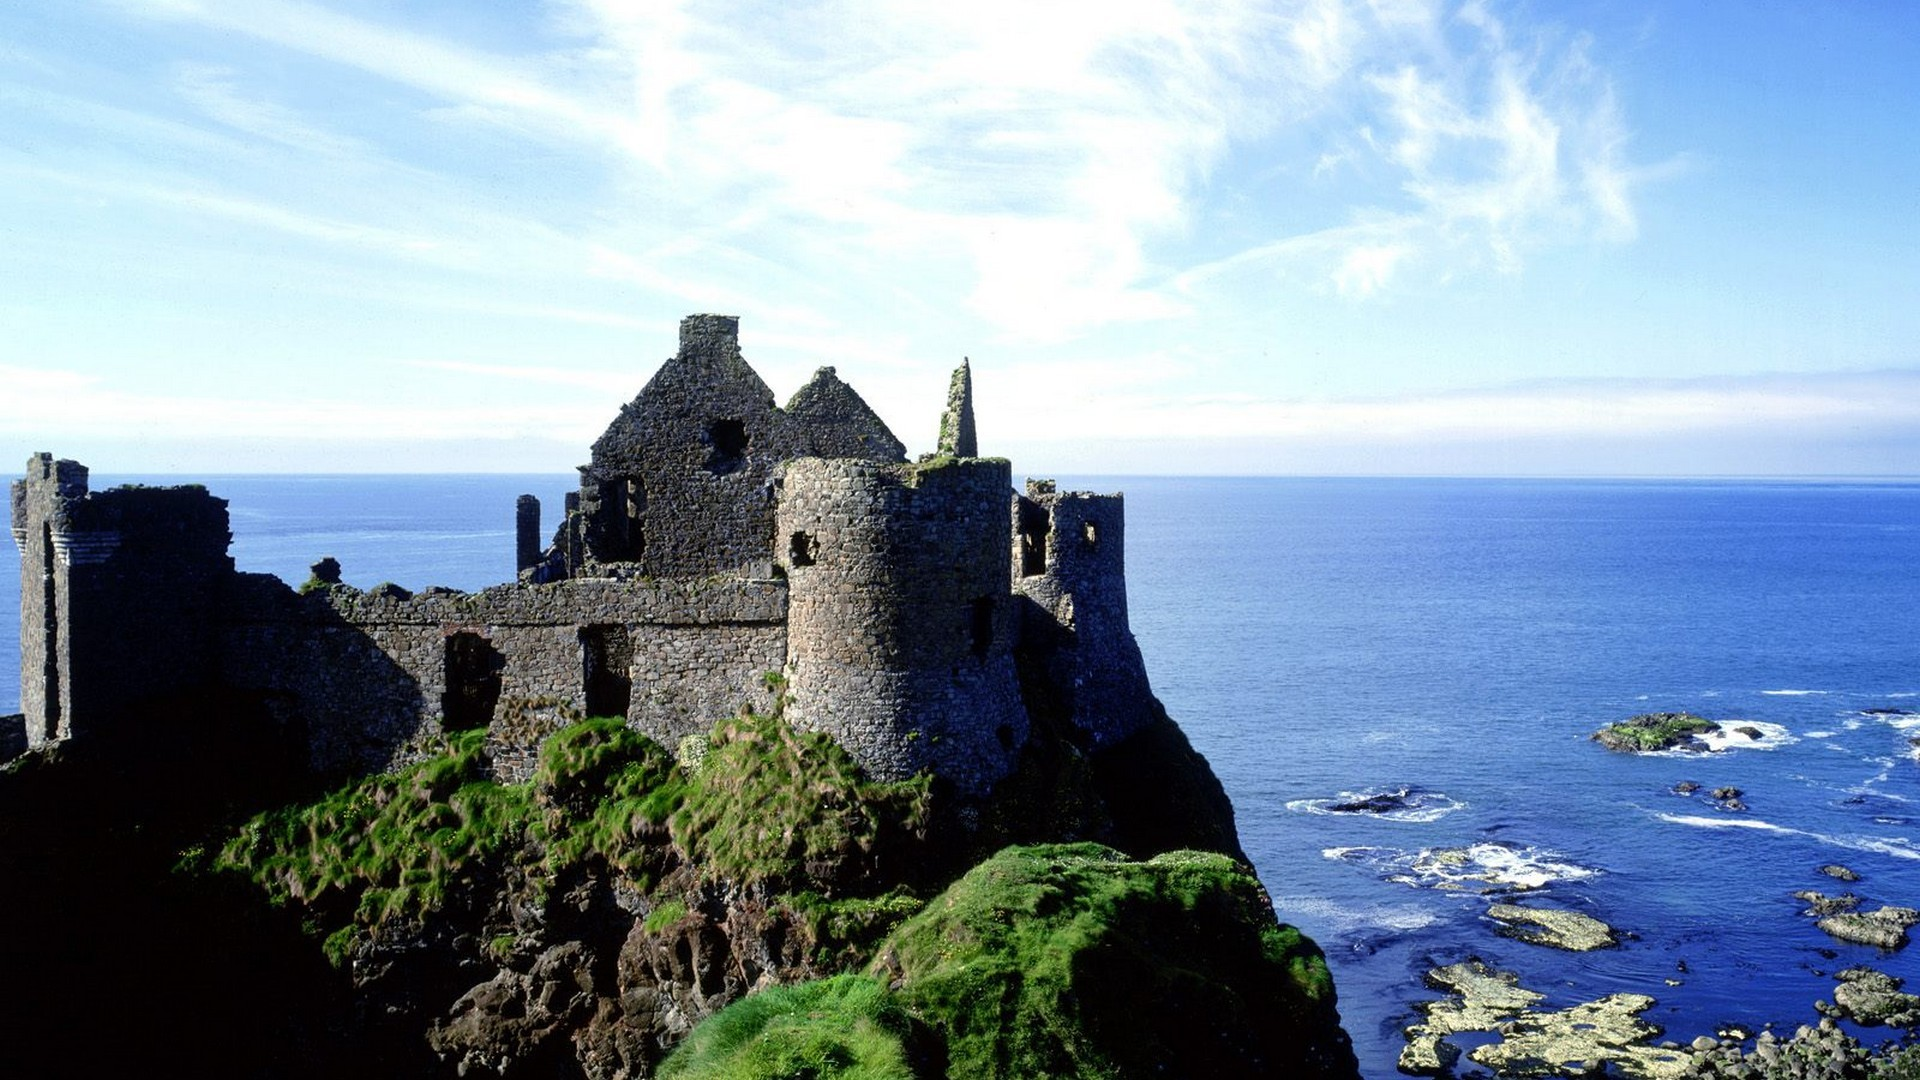 ruins-architecture-Ireland-dunluce-castle-x-wallpaper-wp428875-1